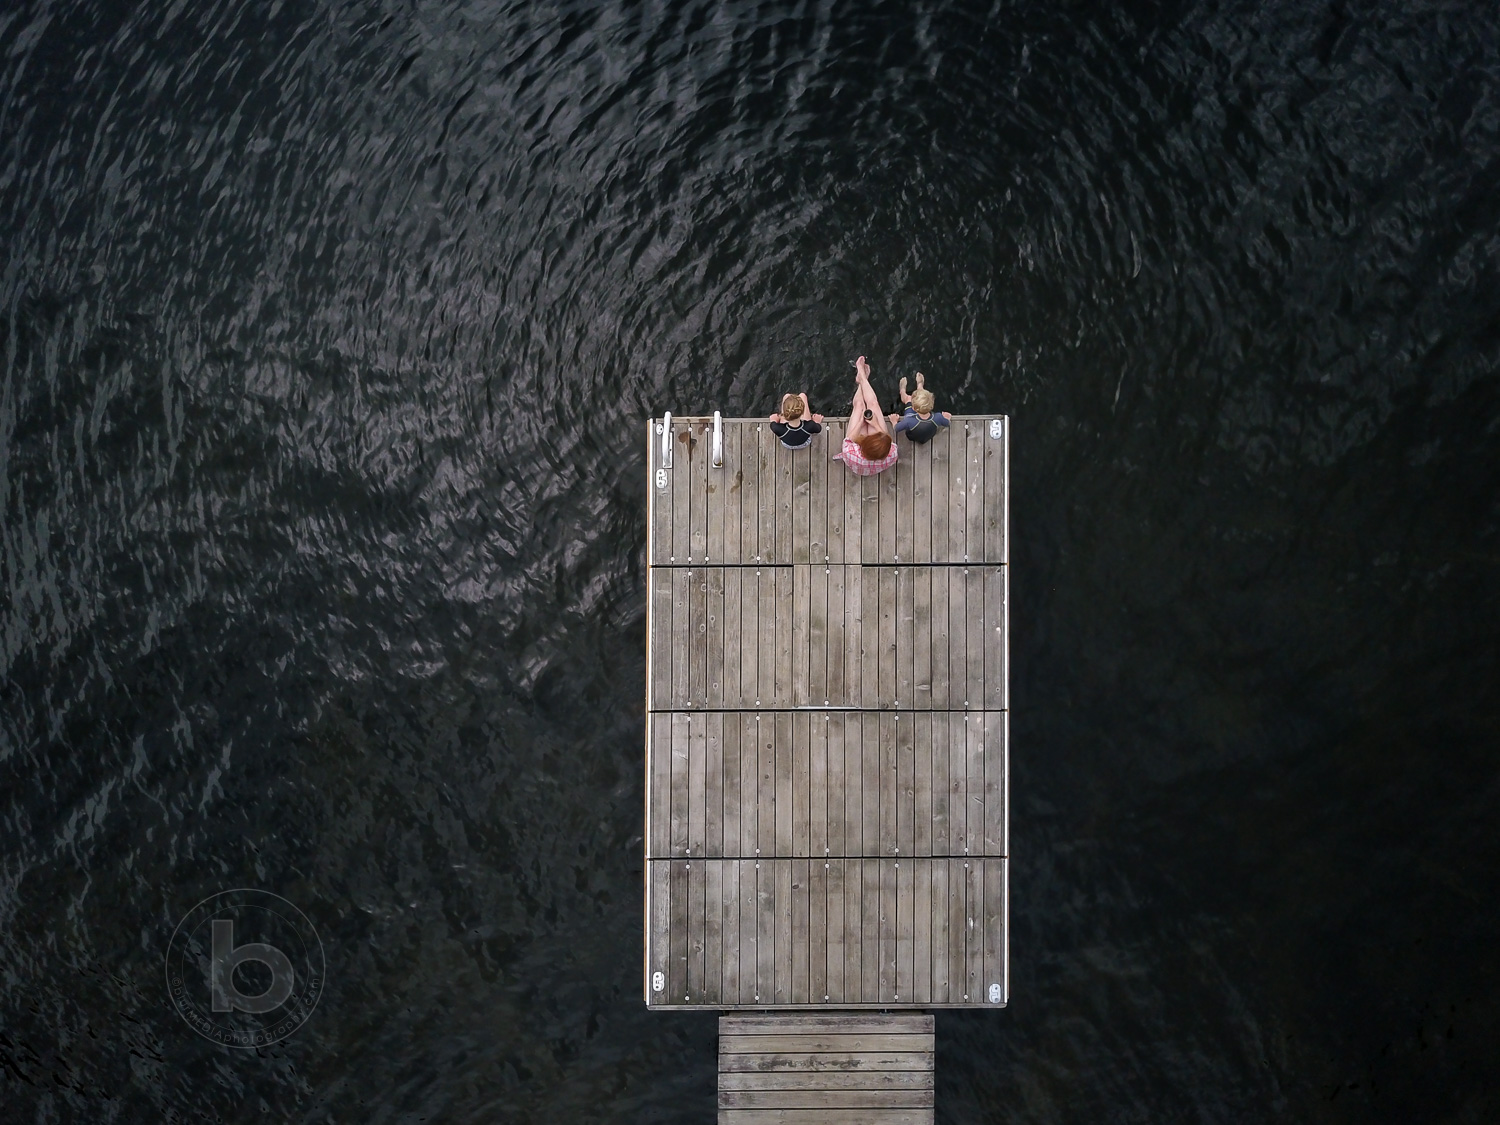 Aerial photo of a woman (40) girl (11) and boy (9) sitting on a wooden dock at a lake in the Kawartha cottage region near Haliburton, Ontario, Canada